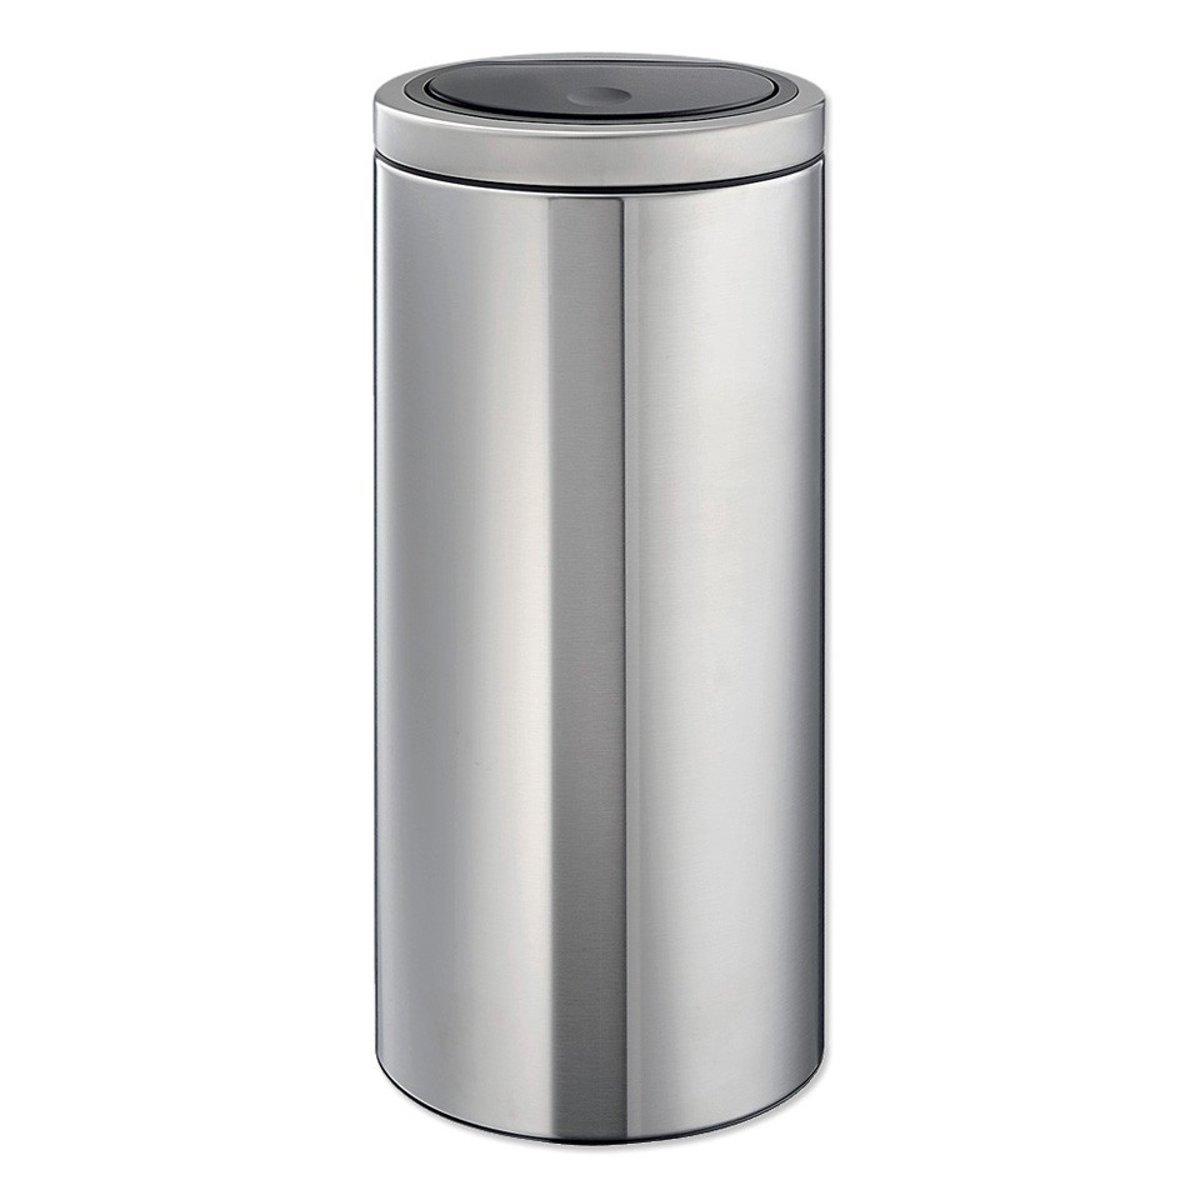 Brabantia Touch bin flat top - 30 liter - matt steel